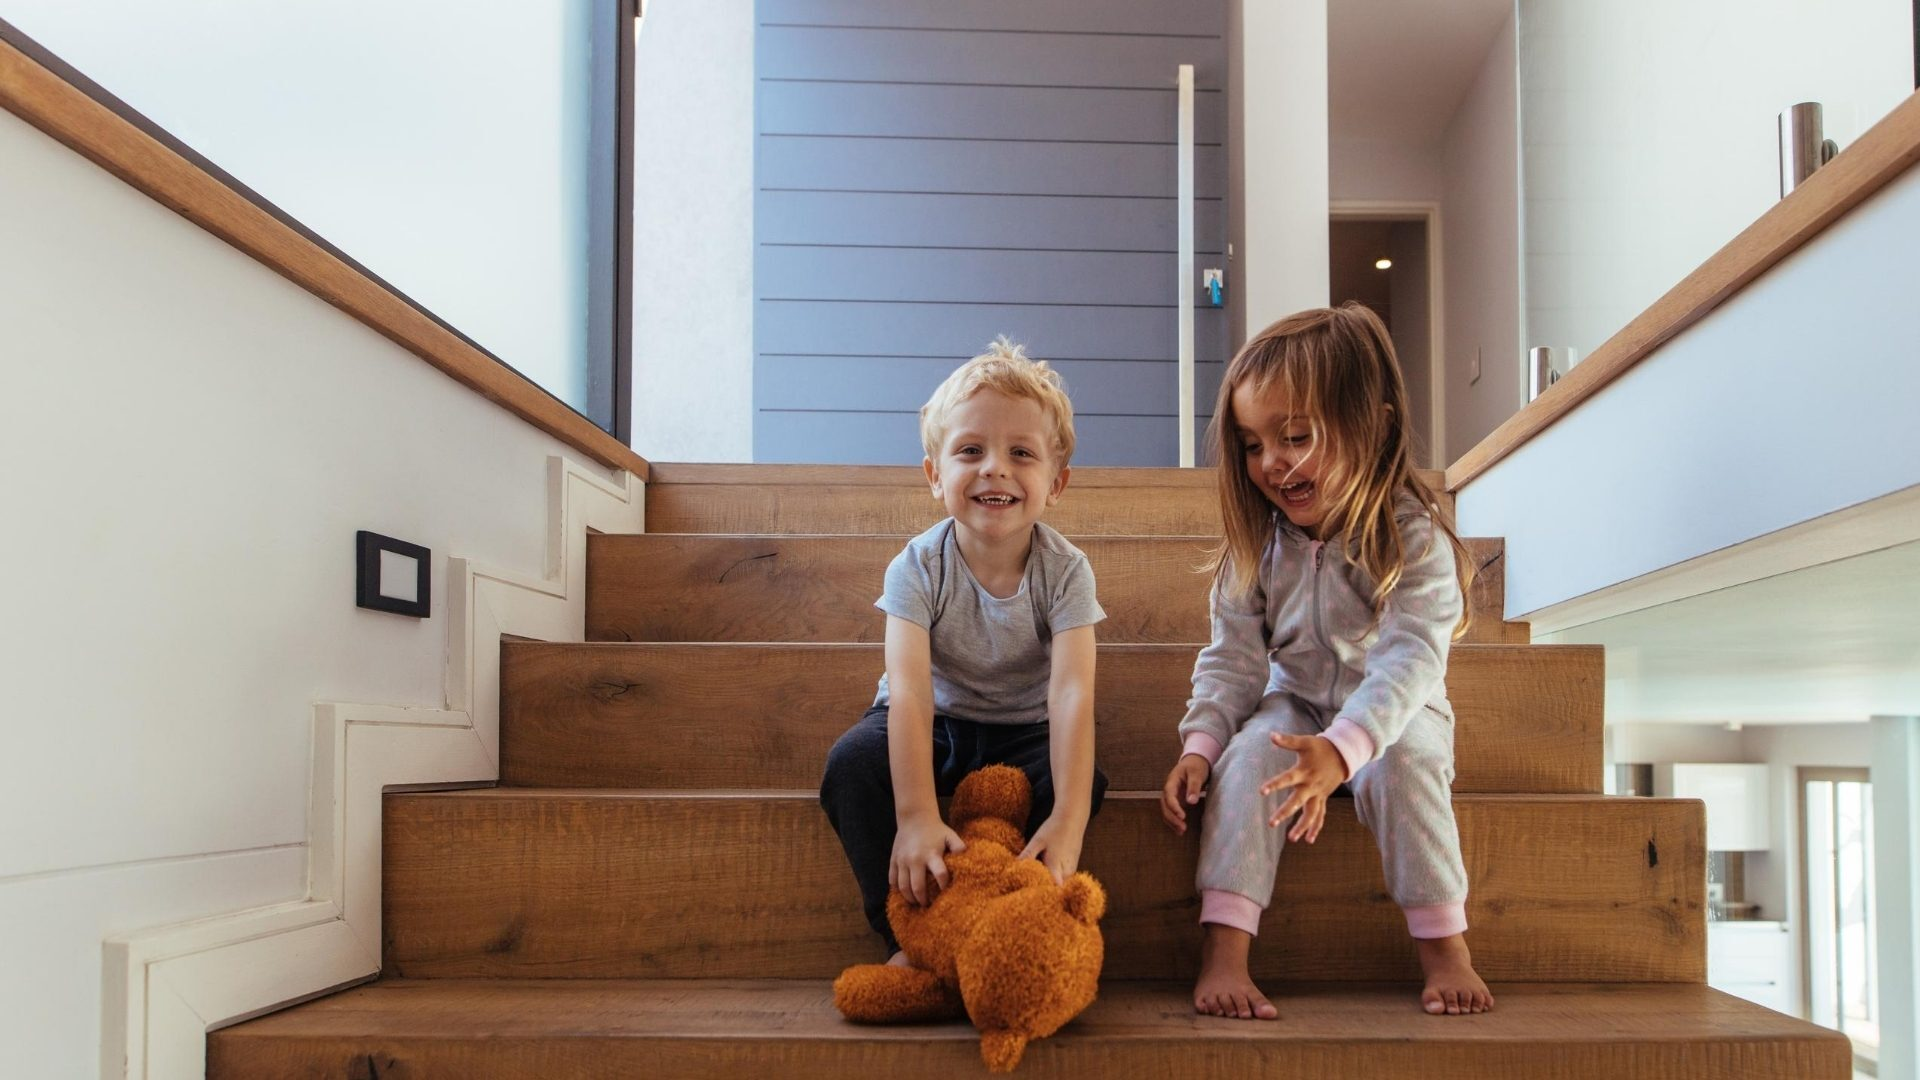 Children playing with a brown teddy bear on the stairs at home